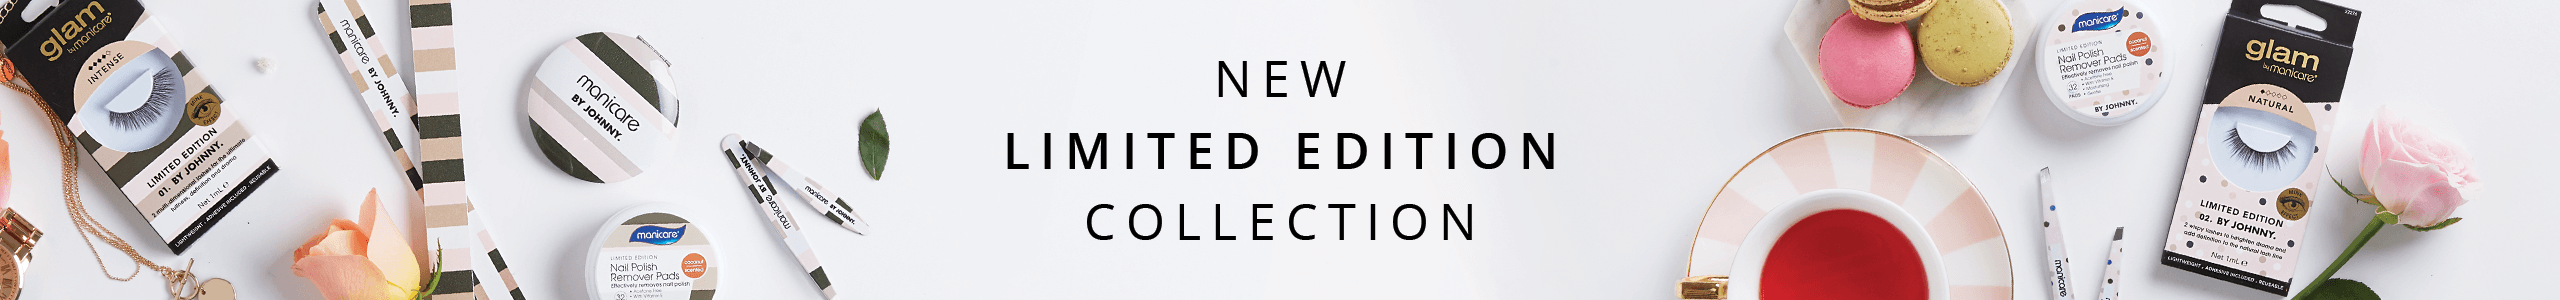 New Limited Edition